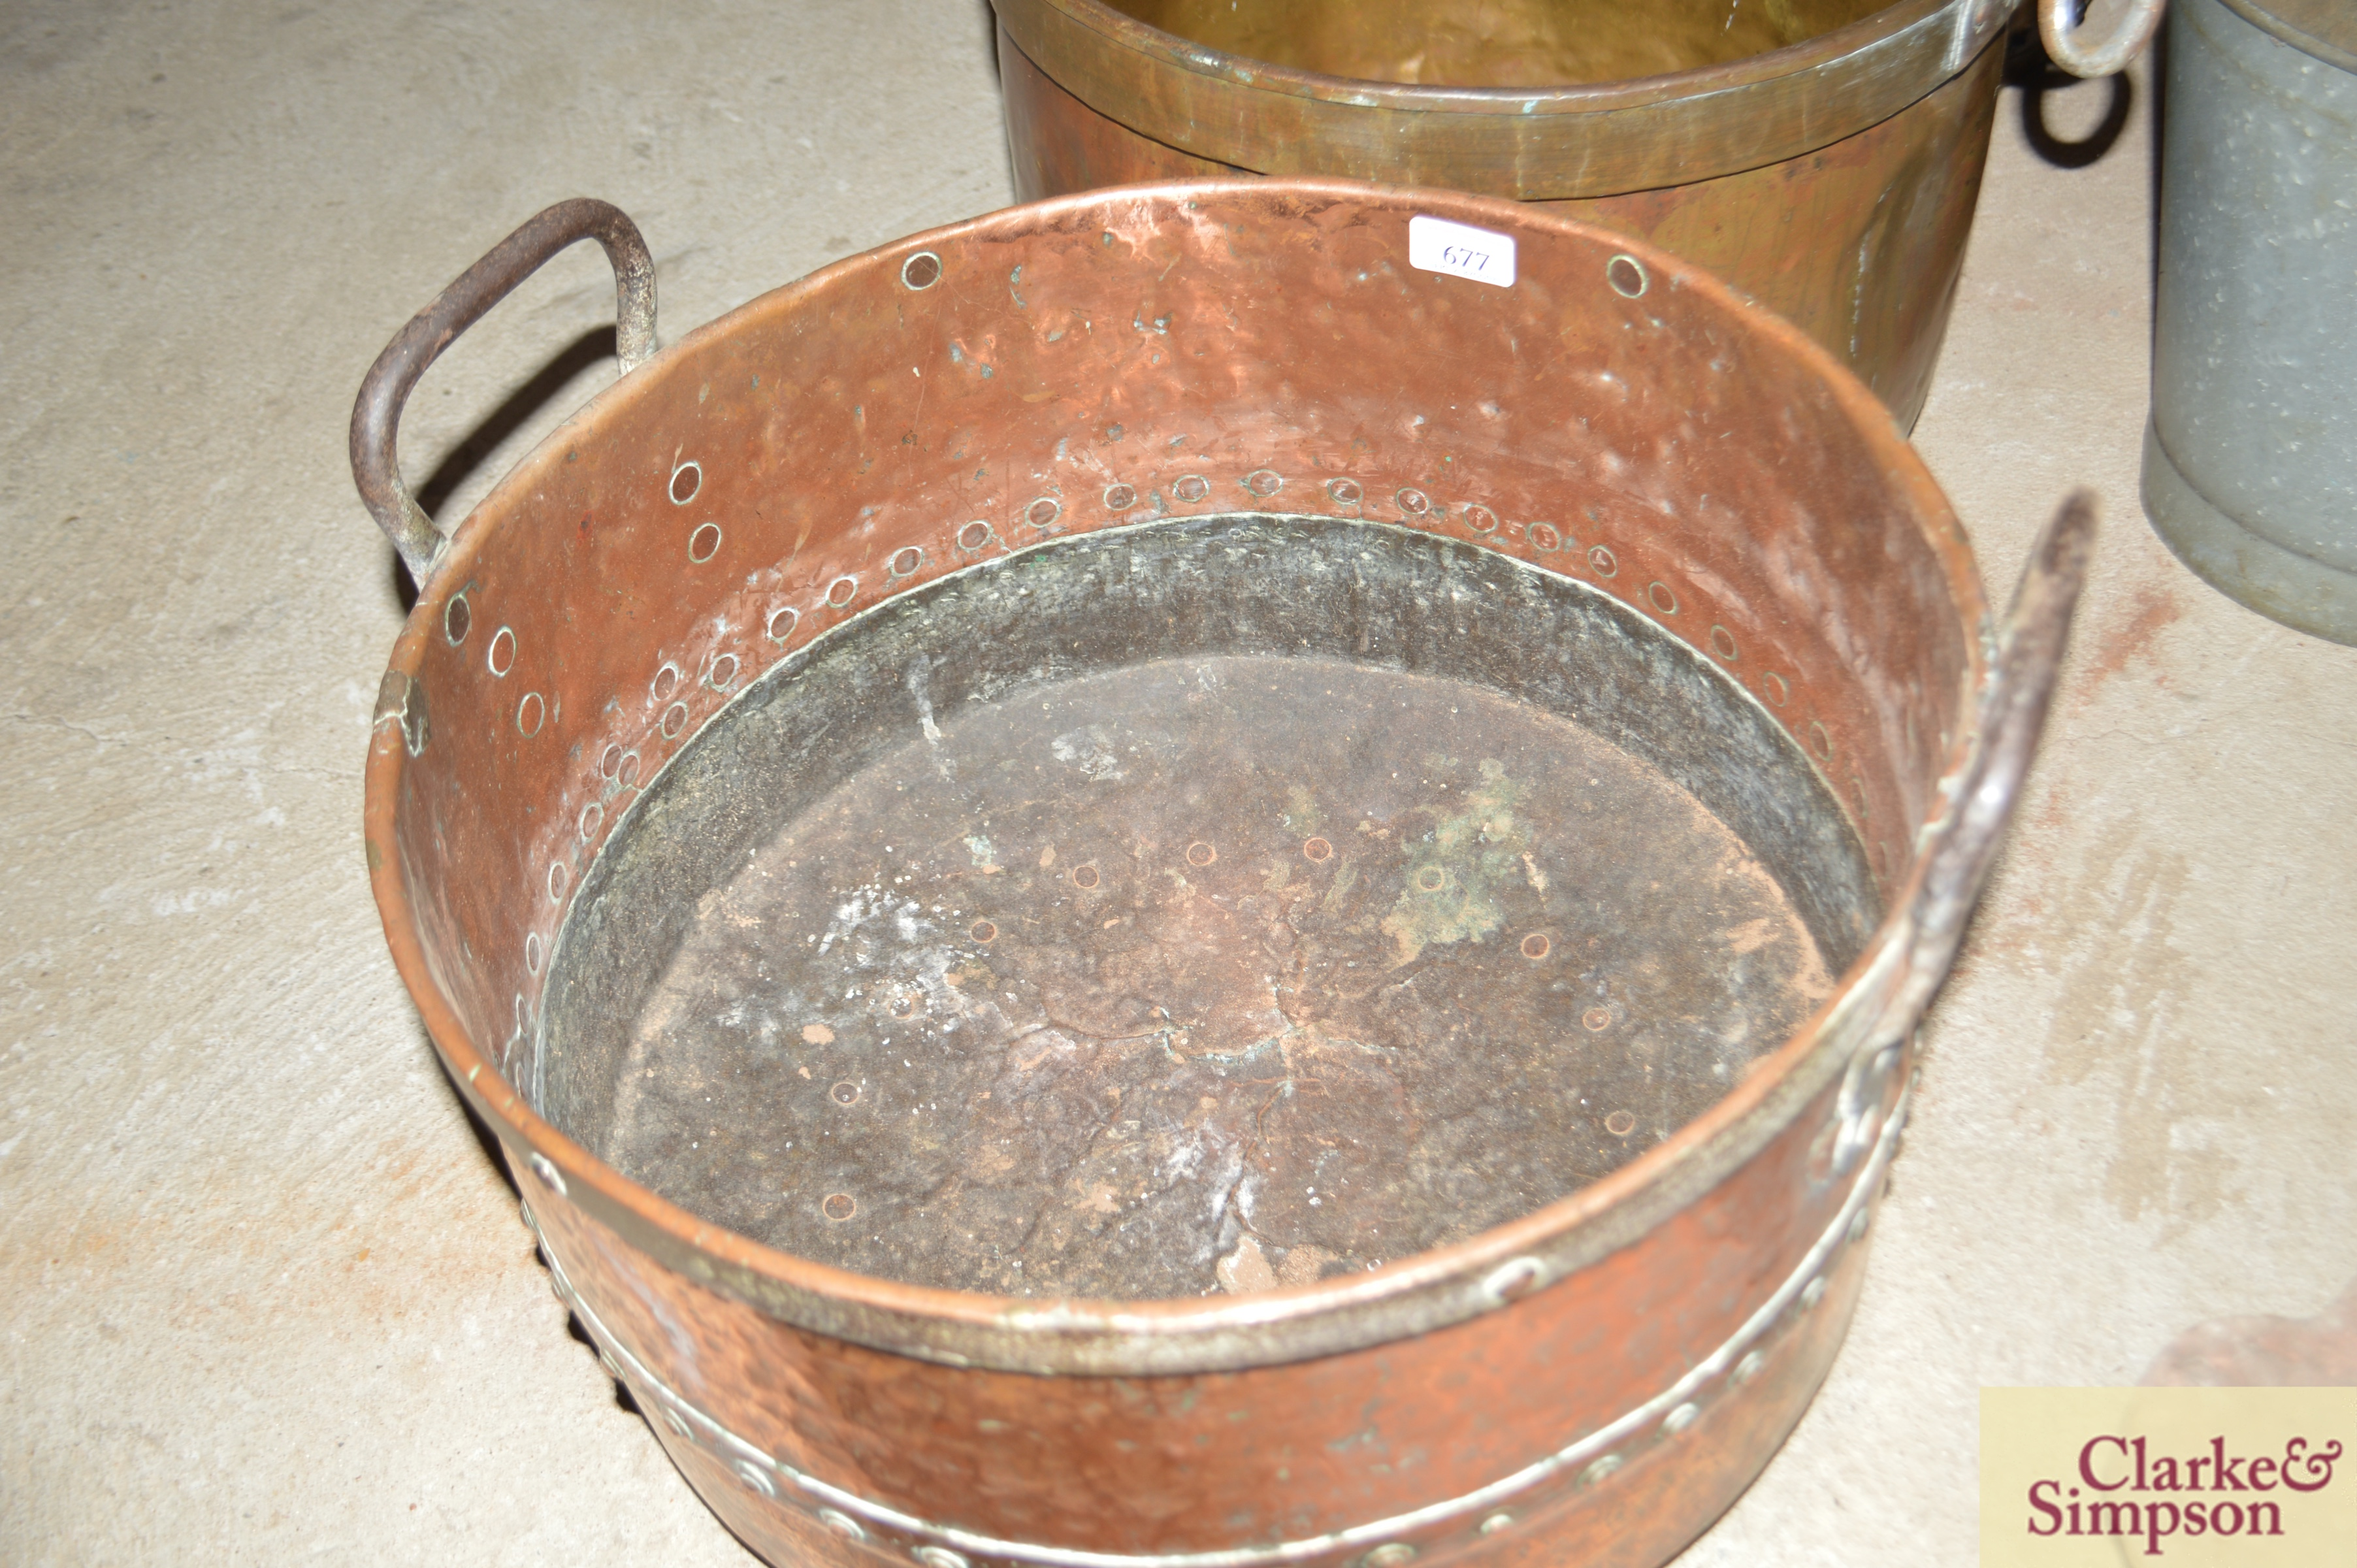 An antique riveted two handled cauldron - Image 2 of 4